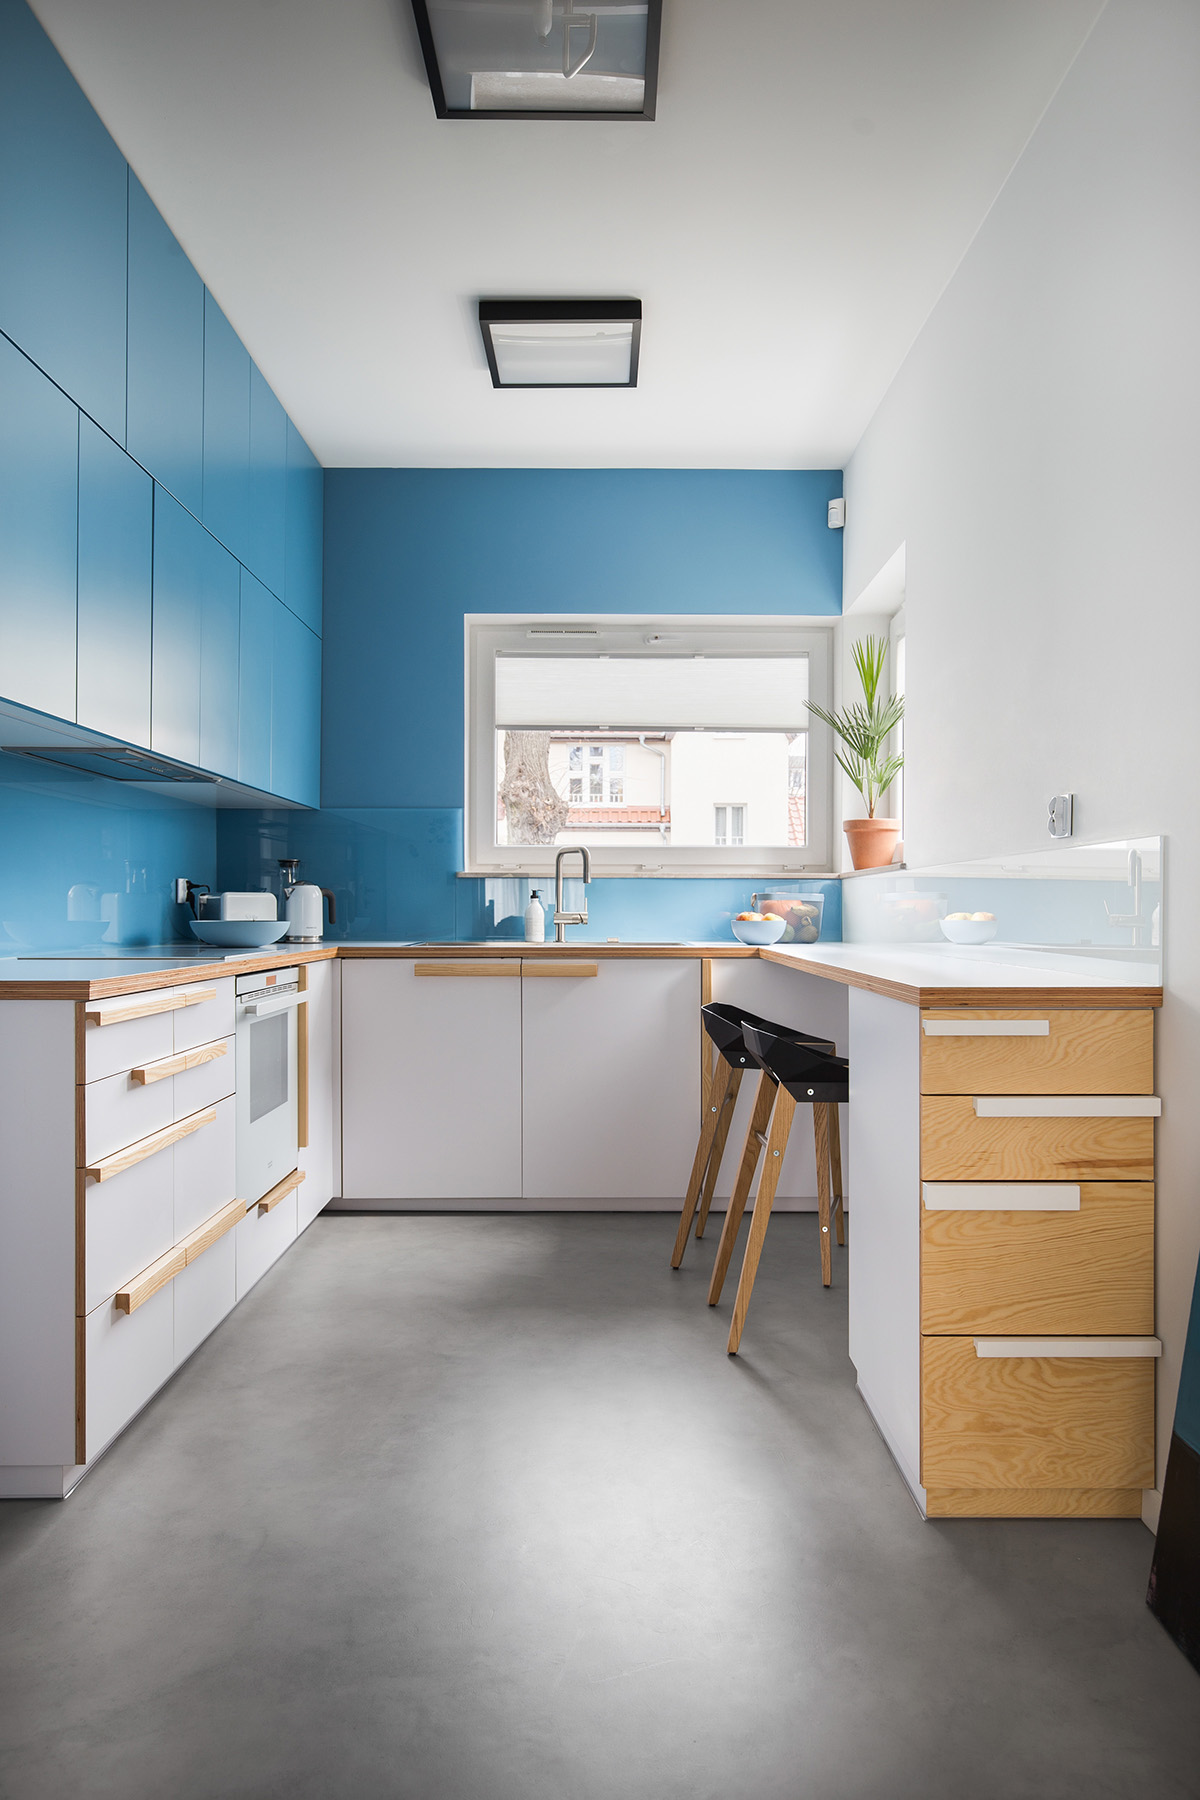 50 unique ushaped kitchens and tips you can use from them